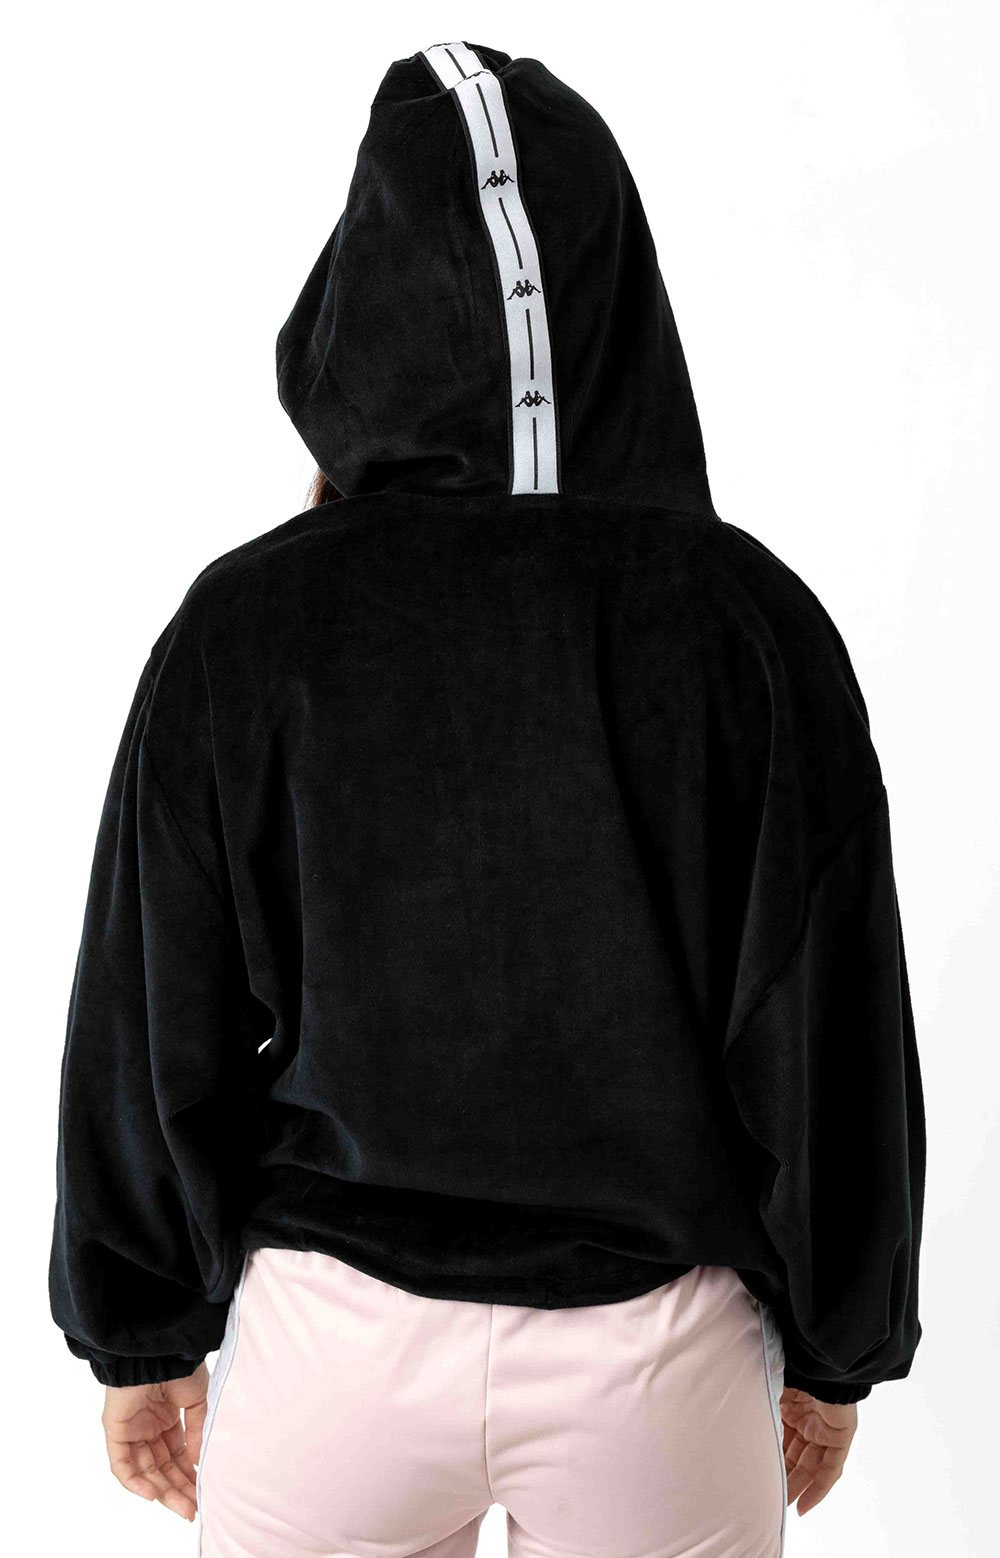 Authentic JPN Belua Velour Pullover Hoodie - Black/White 3